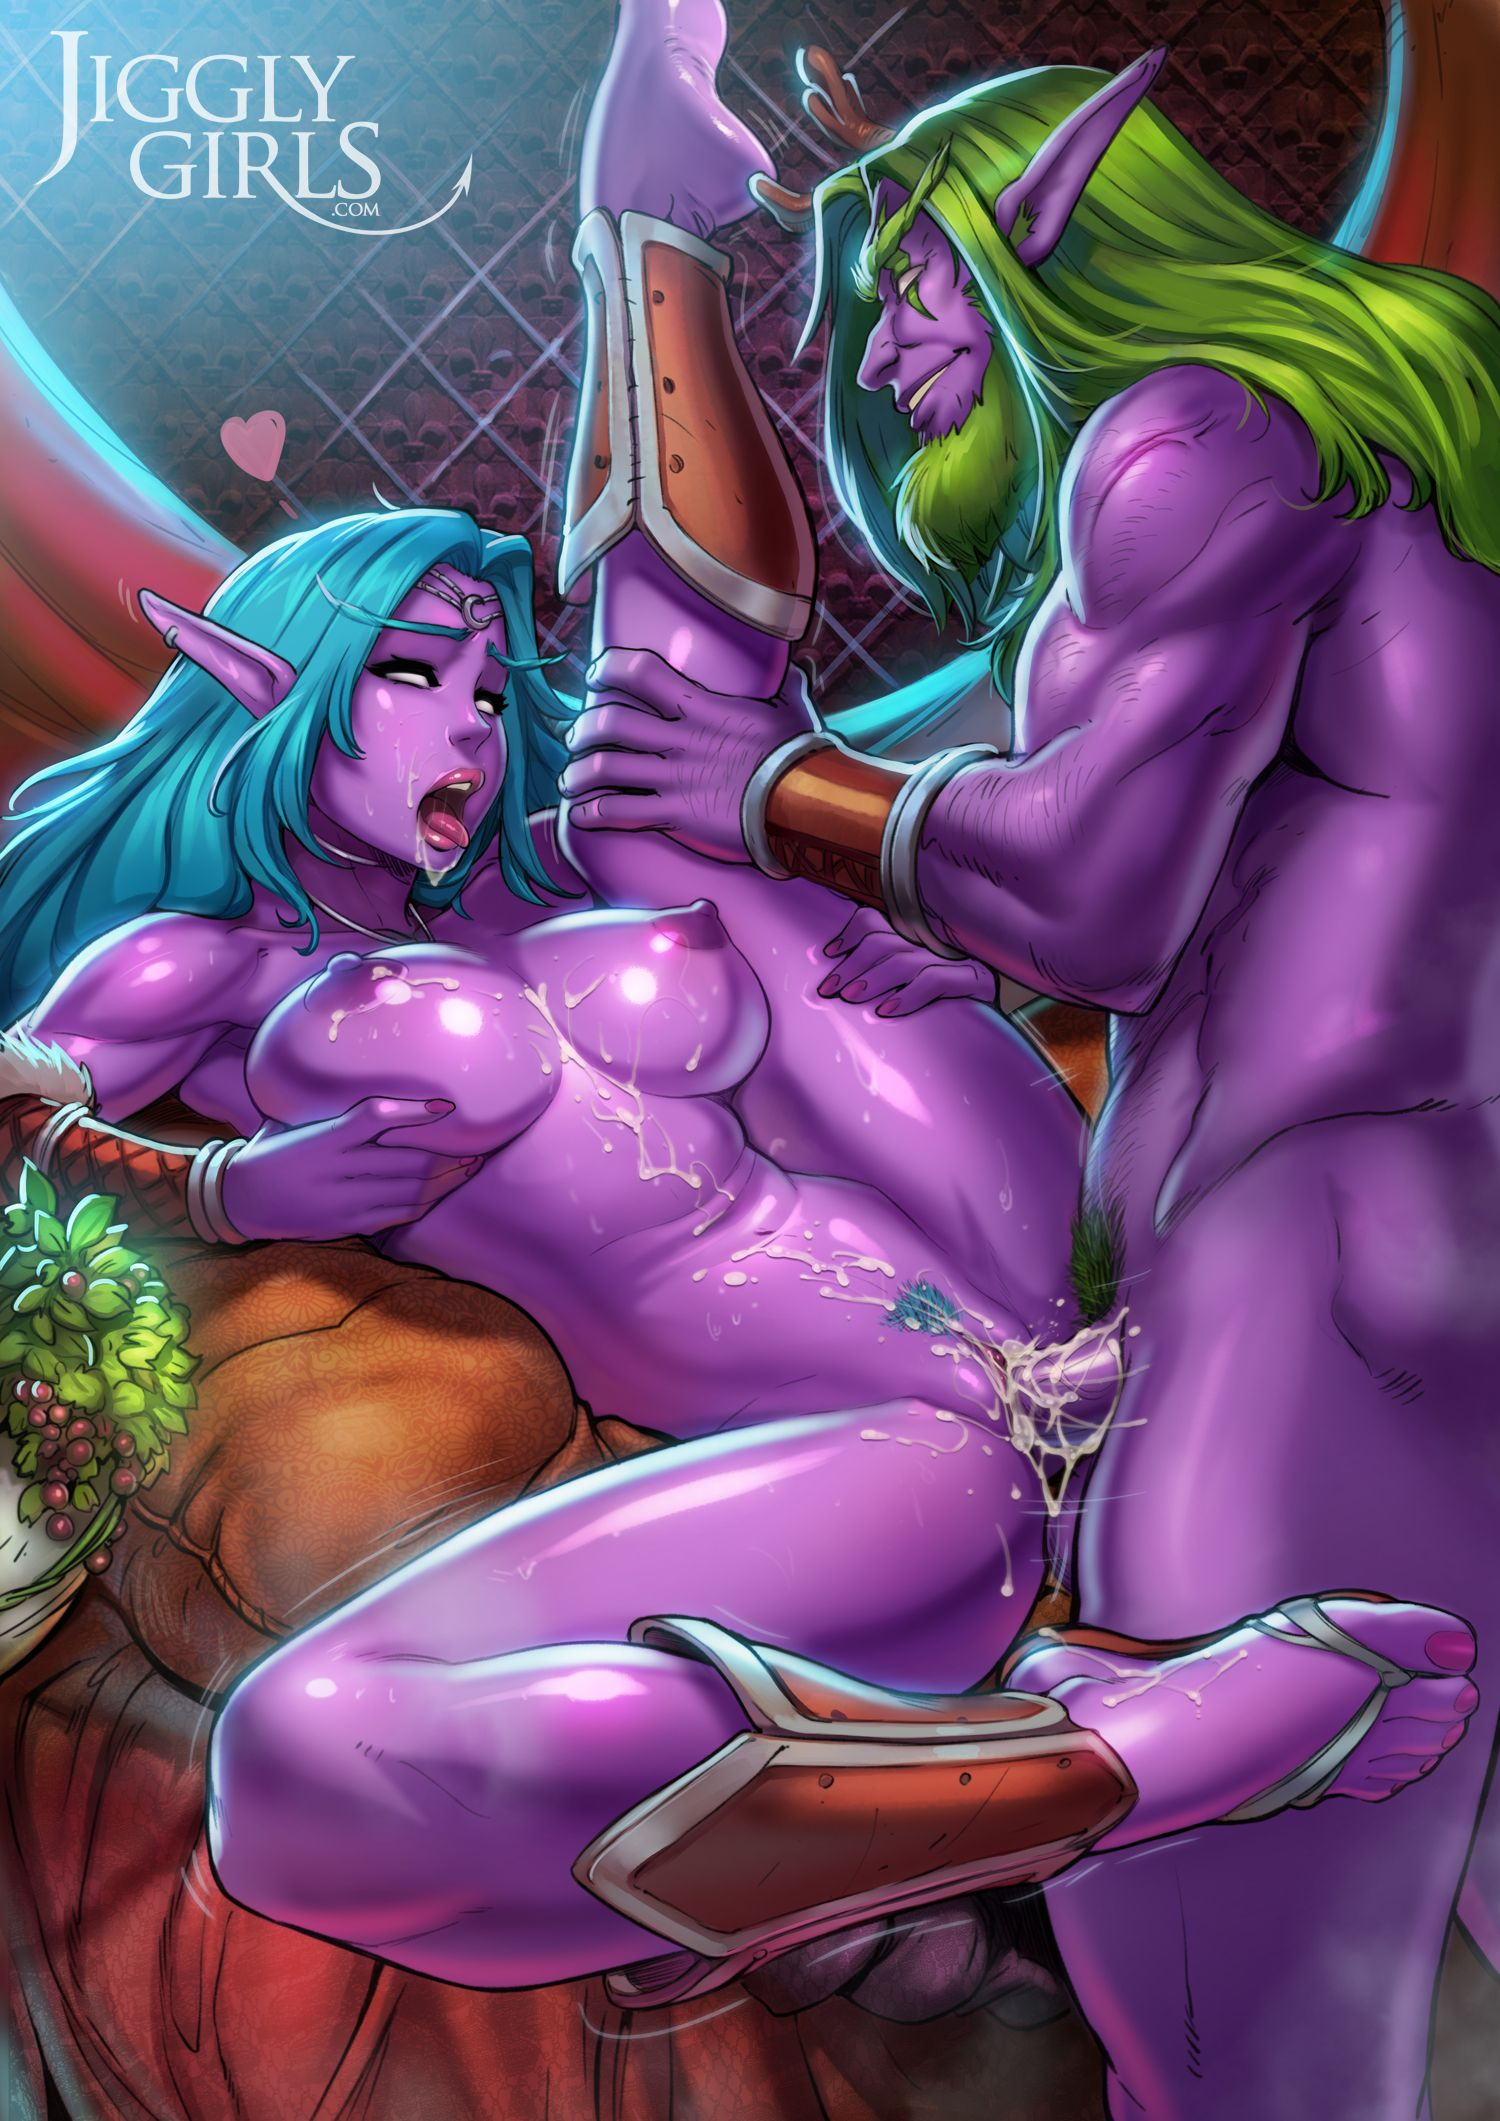 Warcraft tyrande porn naked slut